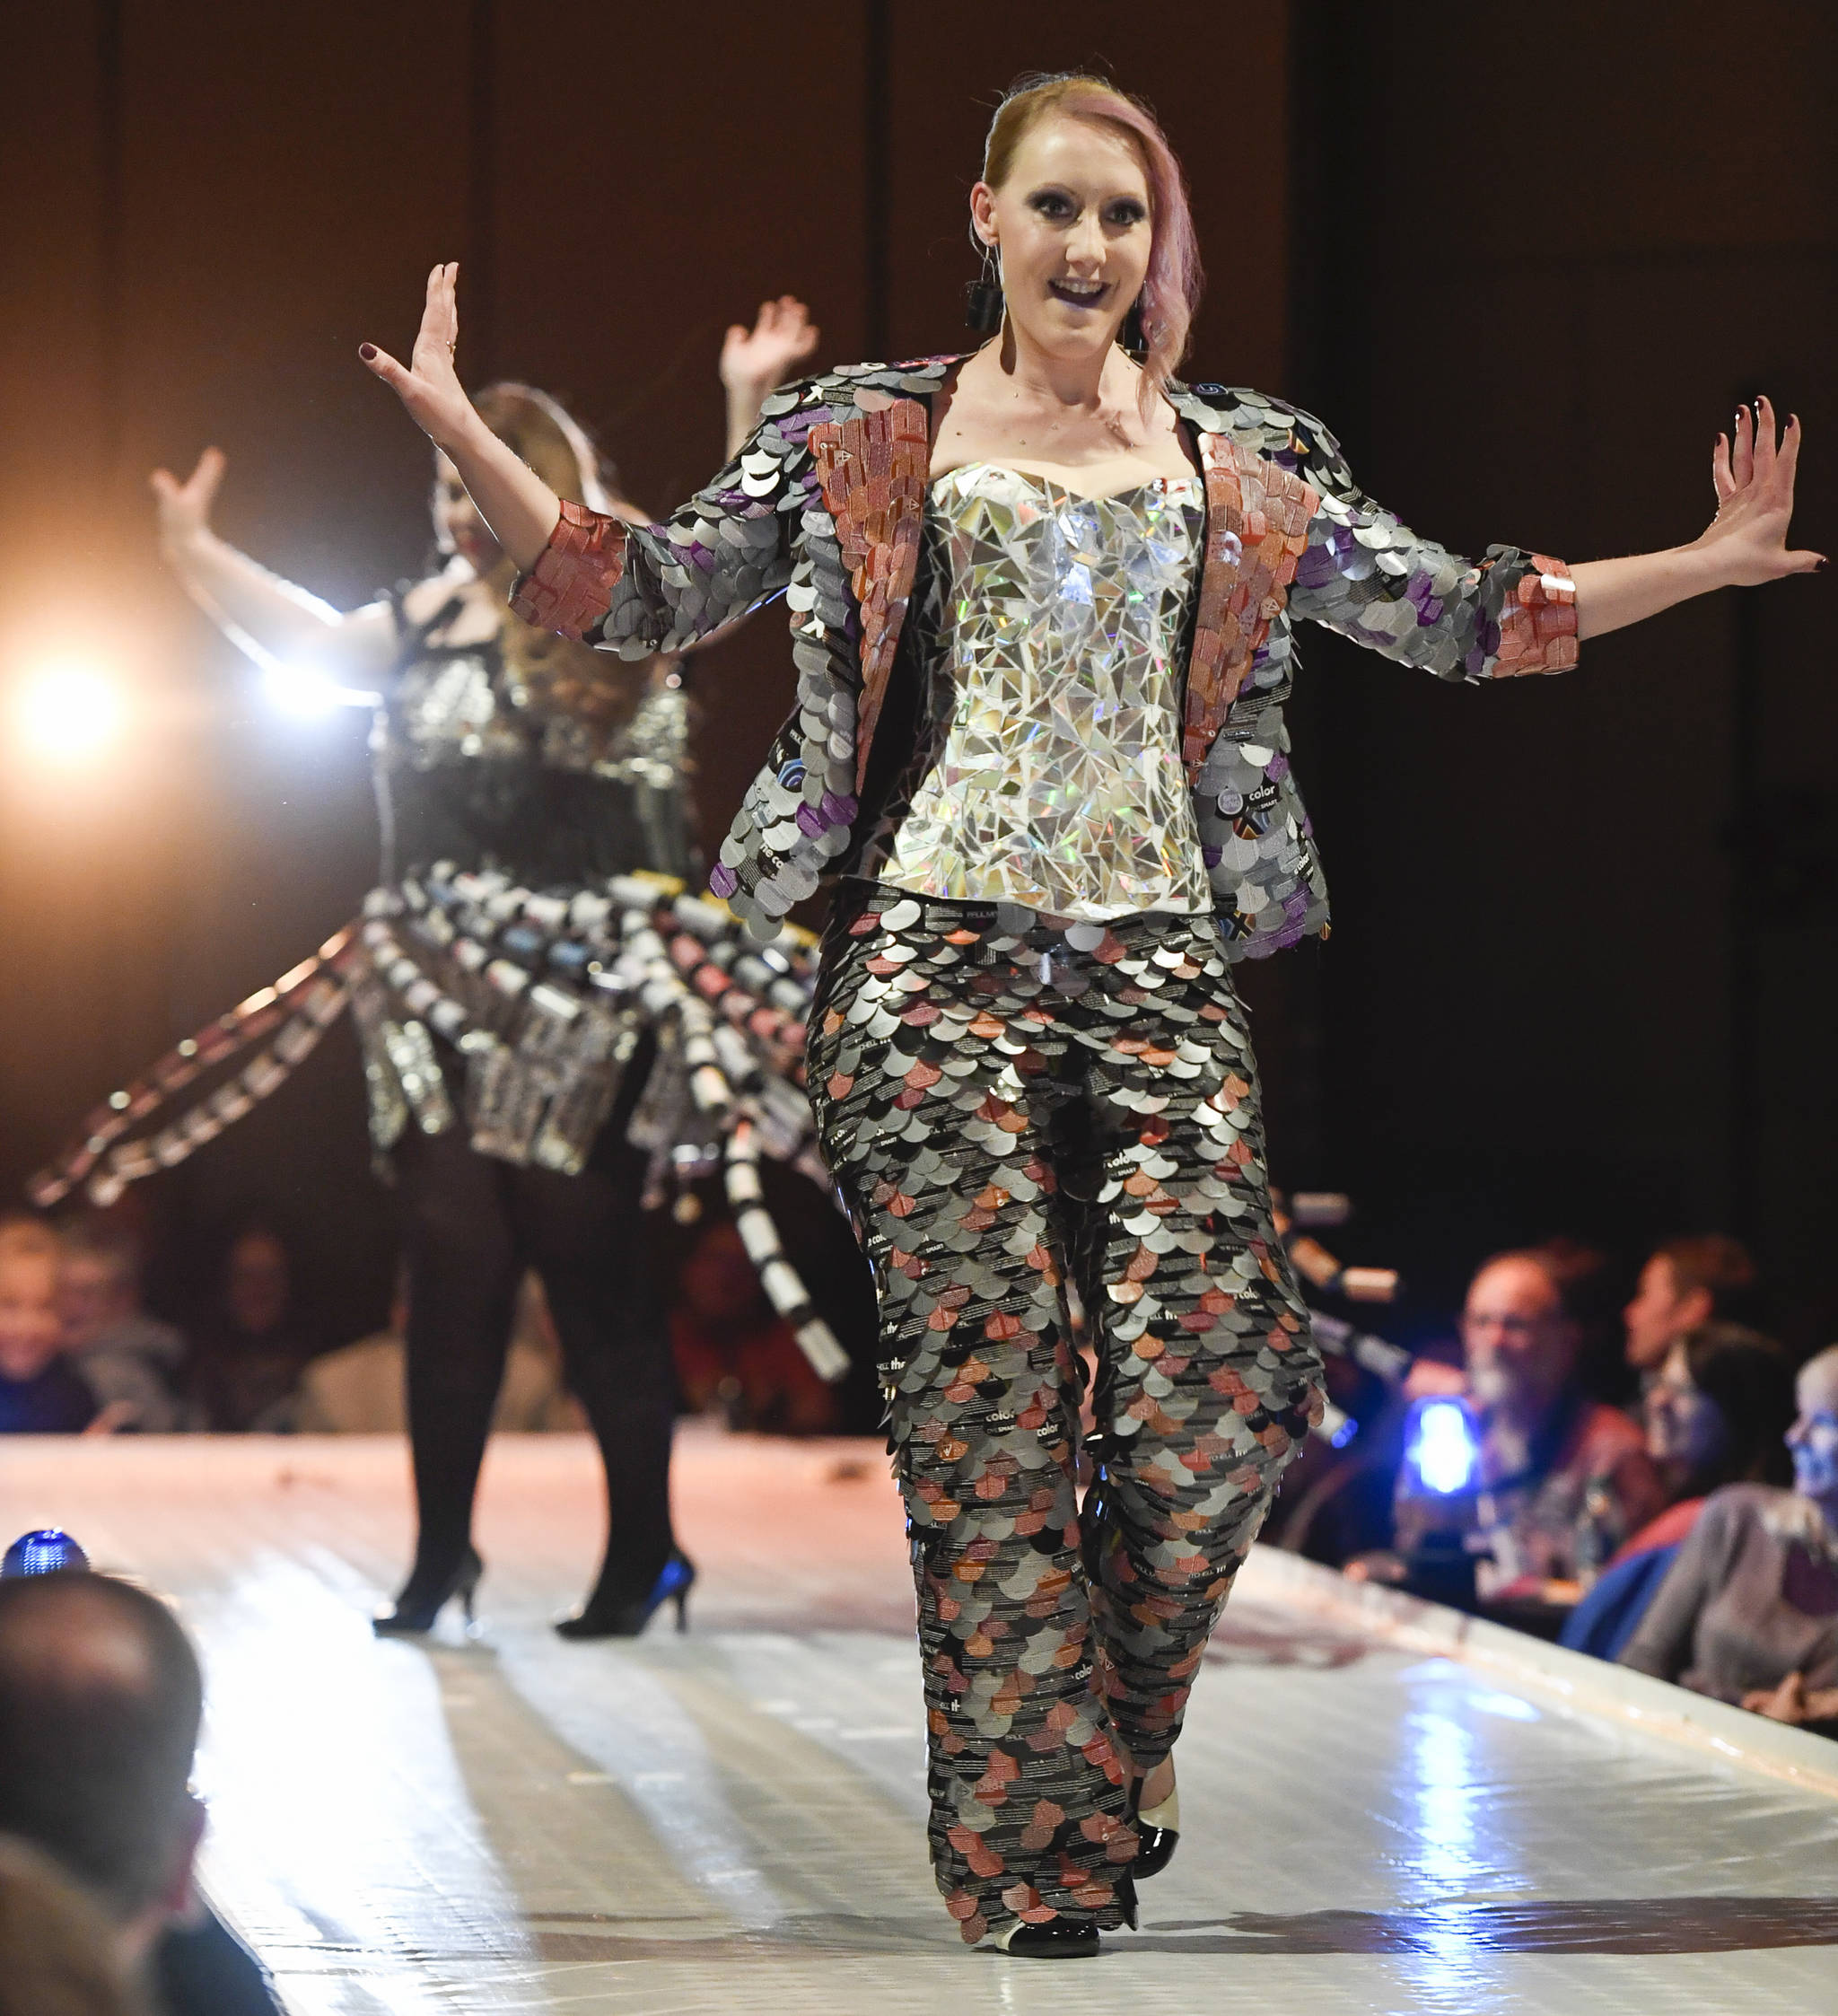 """Brandi Campbell and Jillian Ferguson model Campbell's """"Color Me Pretty"""" at the Wearable Art show at Centennial Hall on Saturday, Feb. 16, 2019. (Michael Penn 